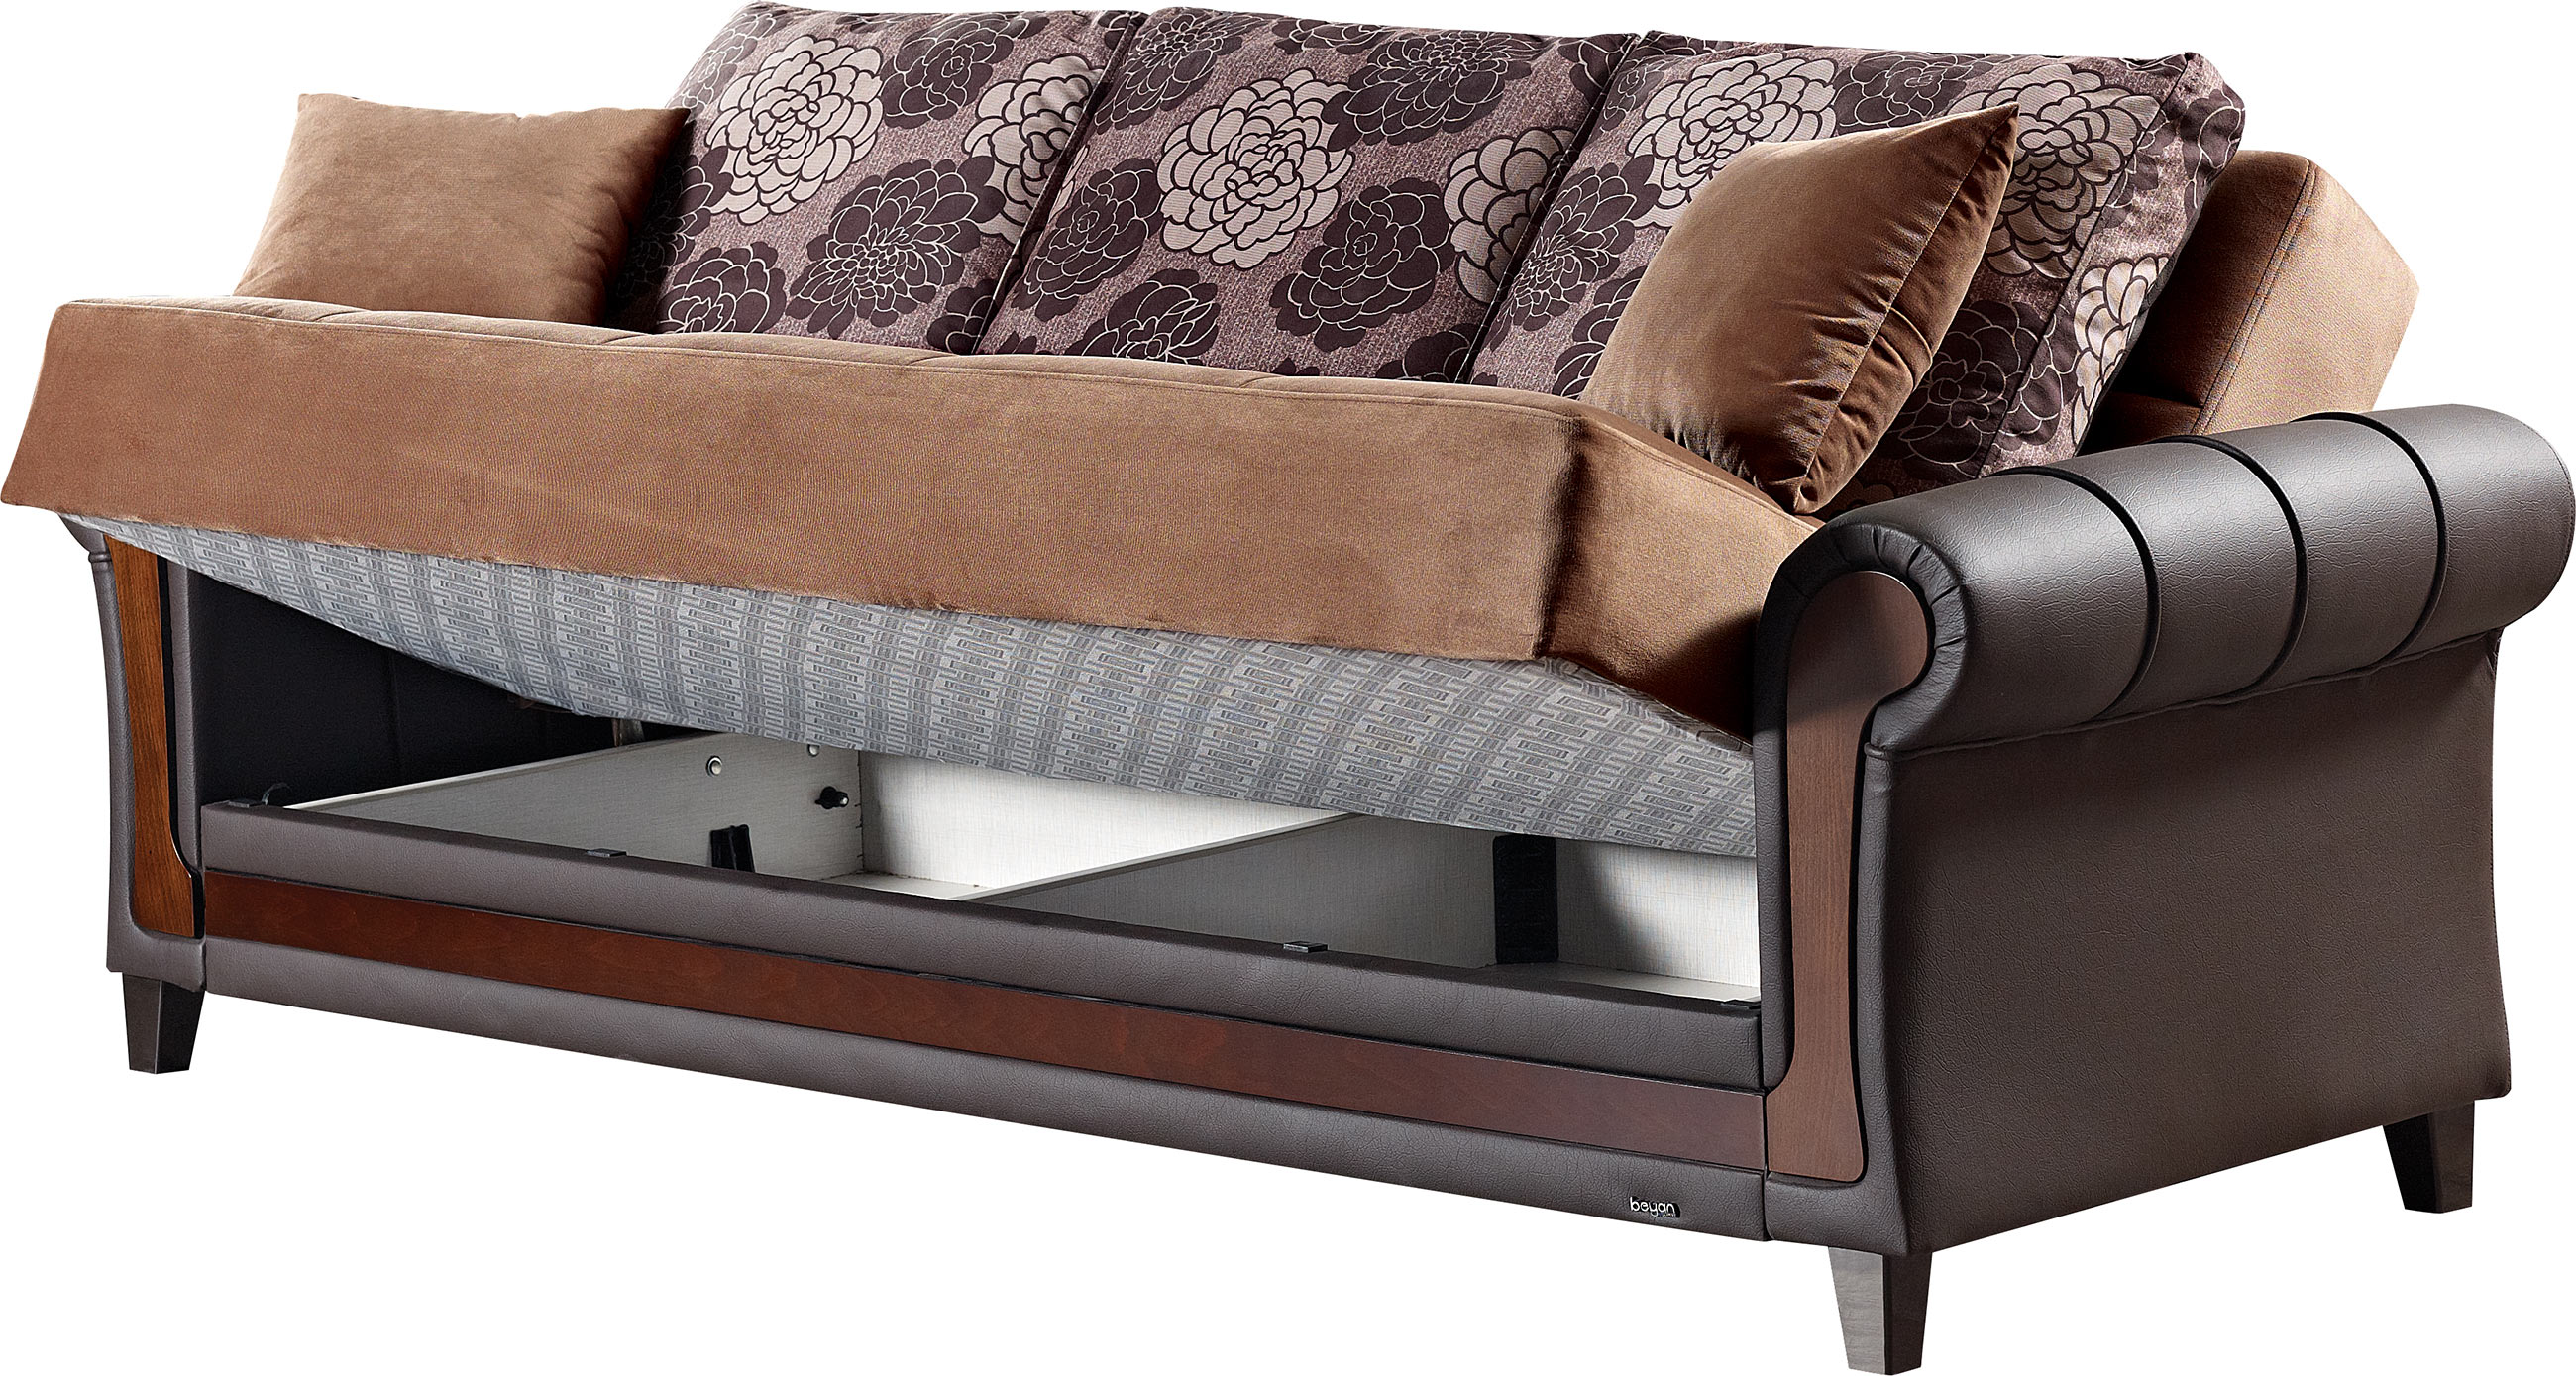 Idaho brown fabric sofa bed by empire furniture usa for Sofa bed usa